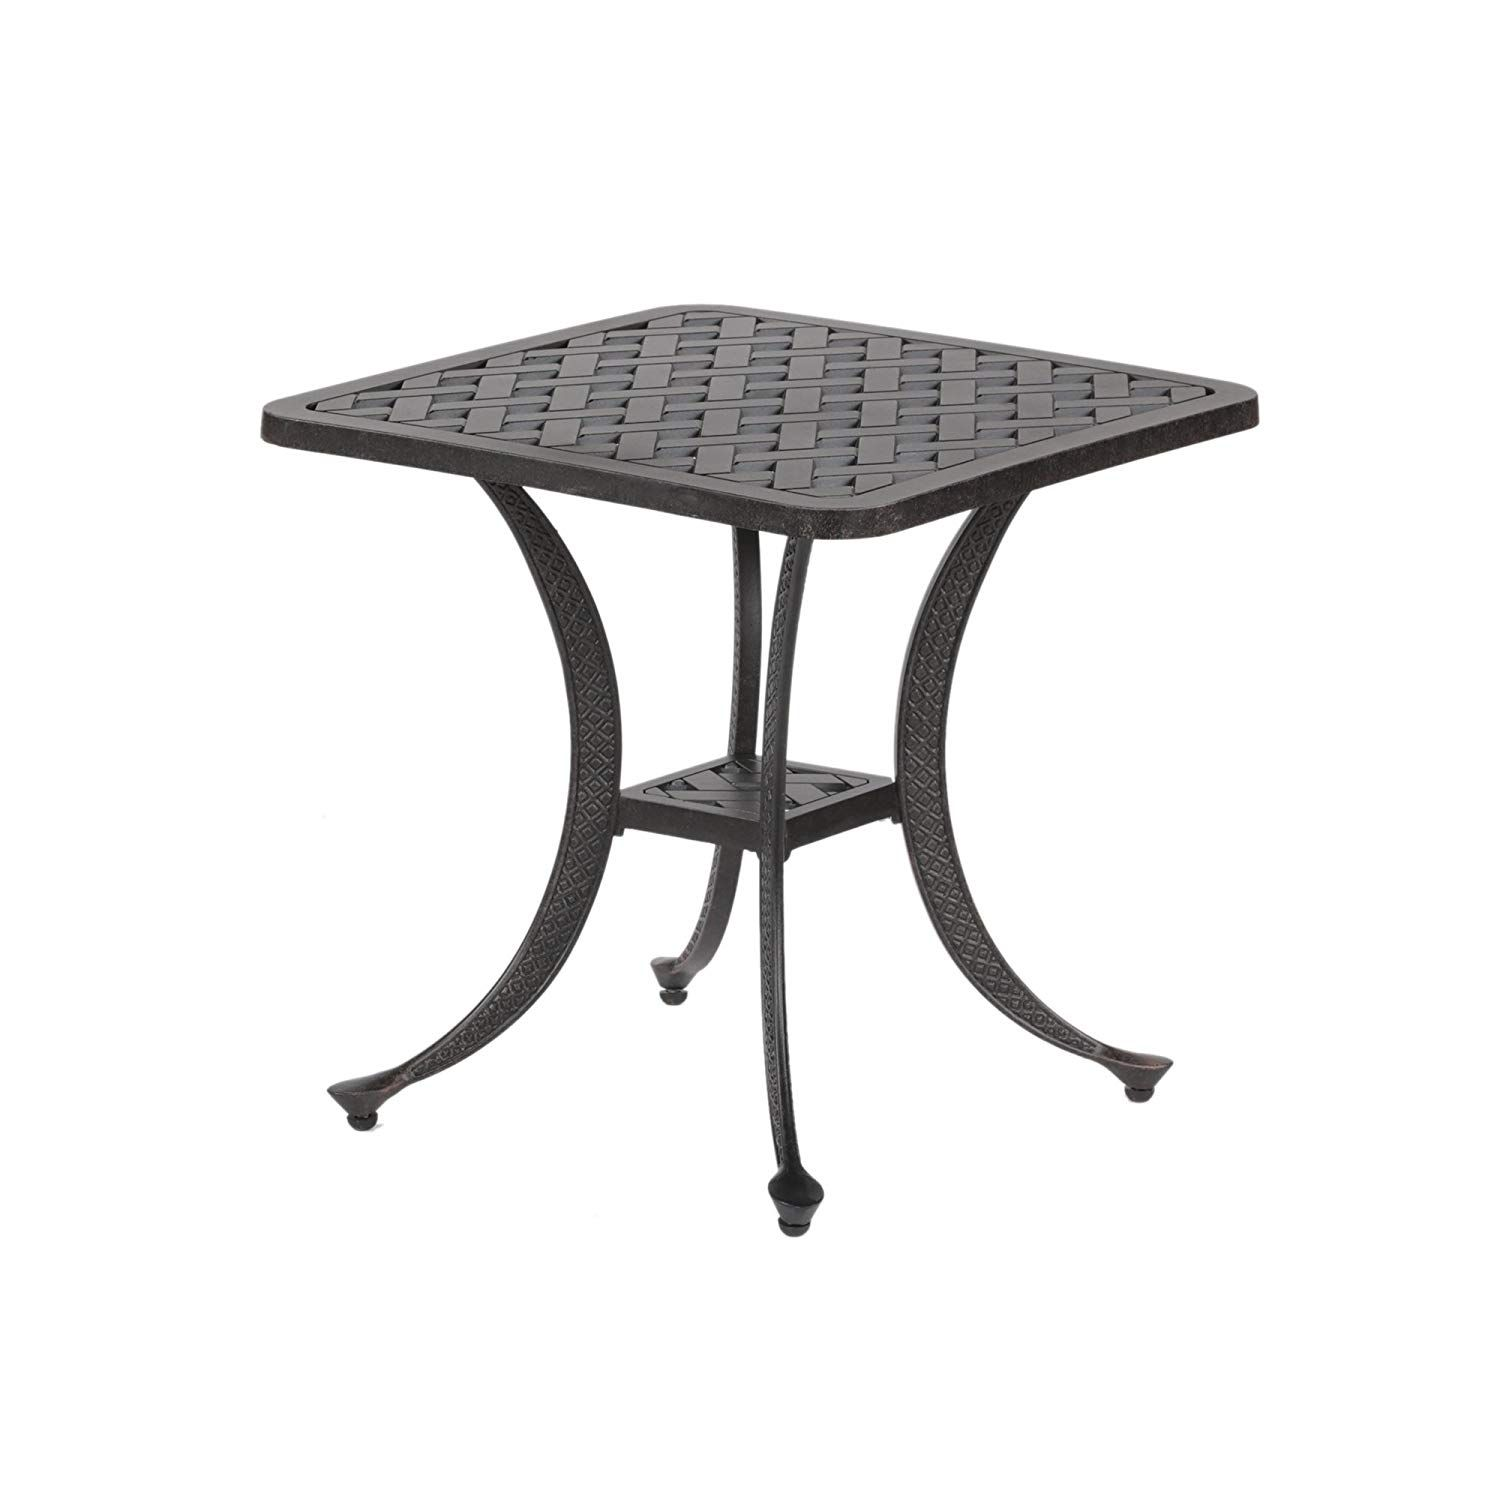 iPatio Sparta Standard End Table | Outdoor end tables, End ... on Sparta Outdoor Living id=26787